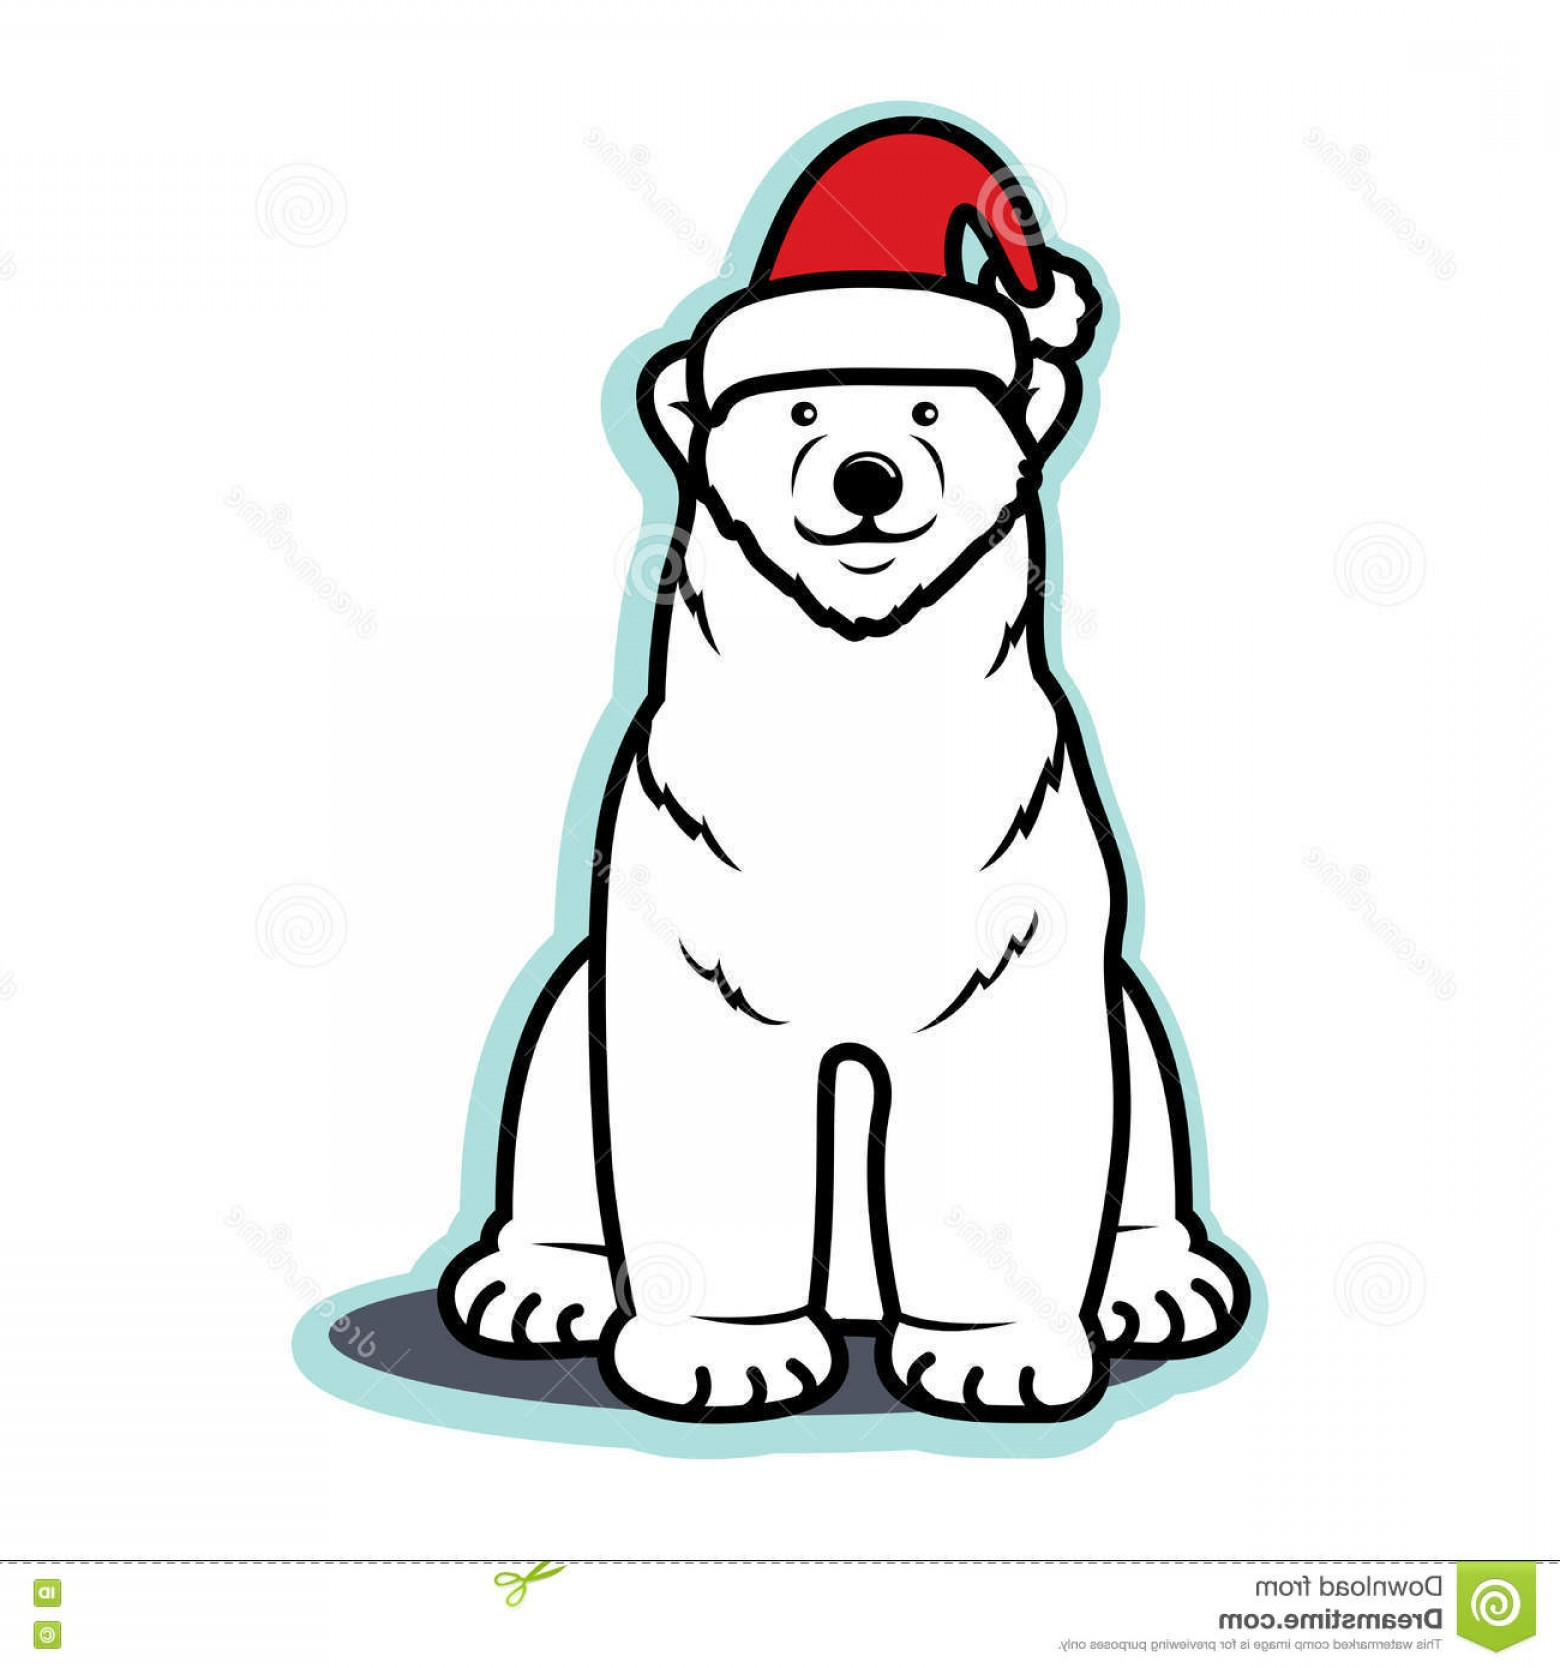 Vector-Based Christmas: Stock Illustration White Christmas Polar Bear Santa Hat Vector Based Illustration Wearing Red Sitting Smiling Happy Image